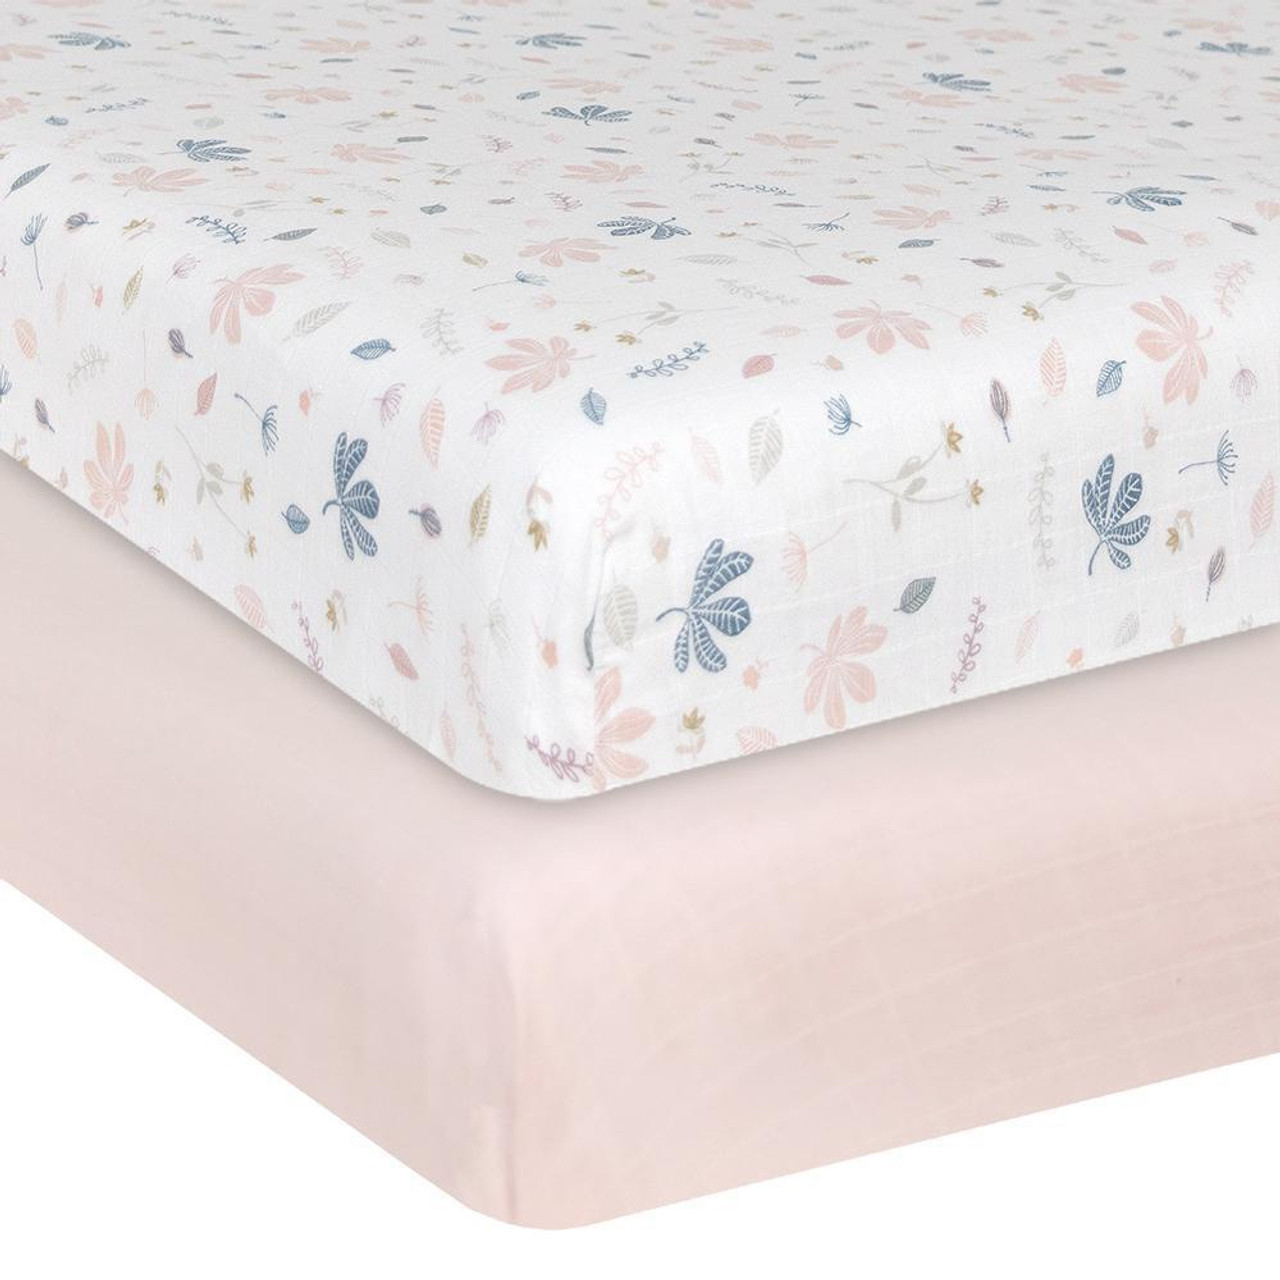 Living Textiles Organic Cotton Muslin Cot Fitted Sheets 2pk at Baby Barn Discounts